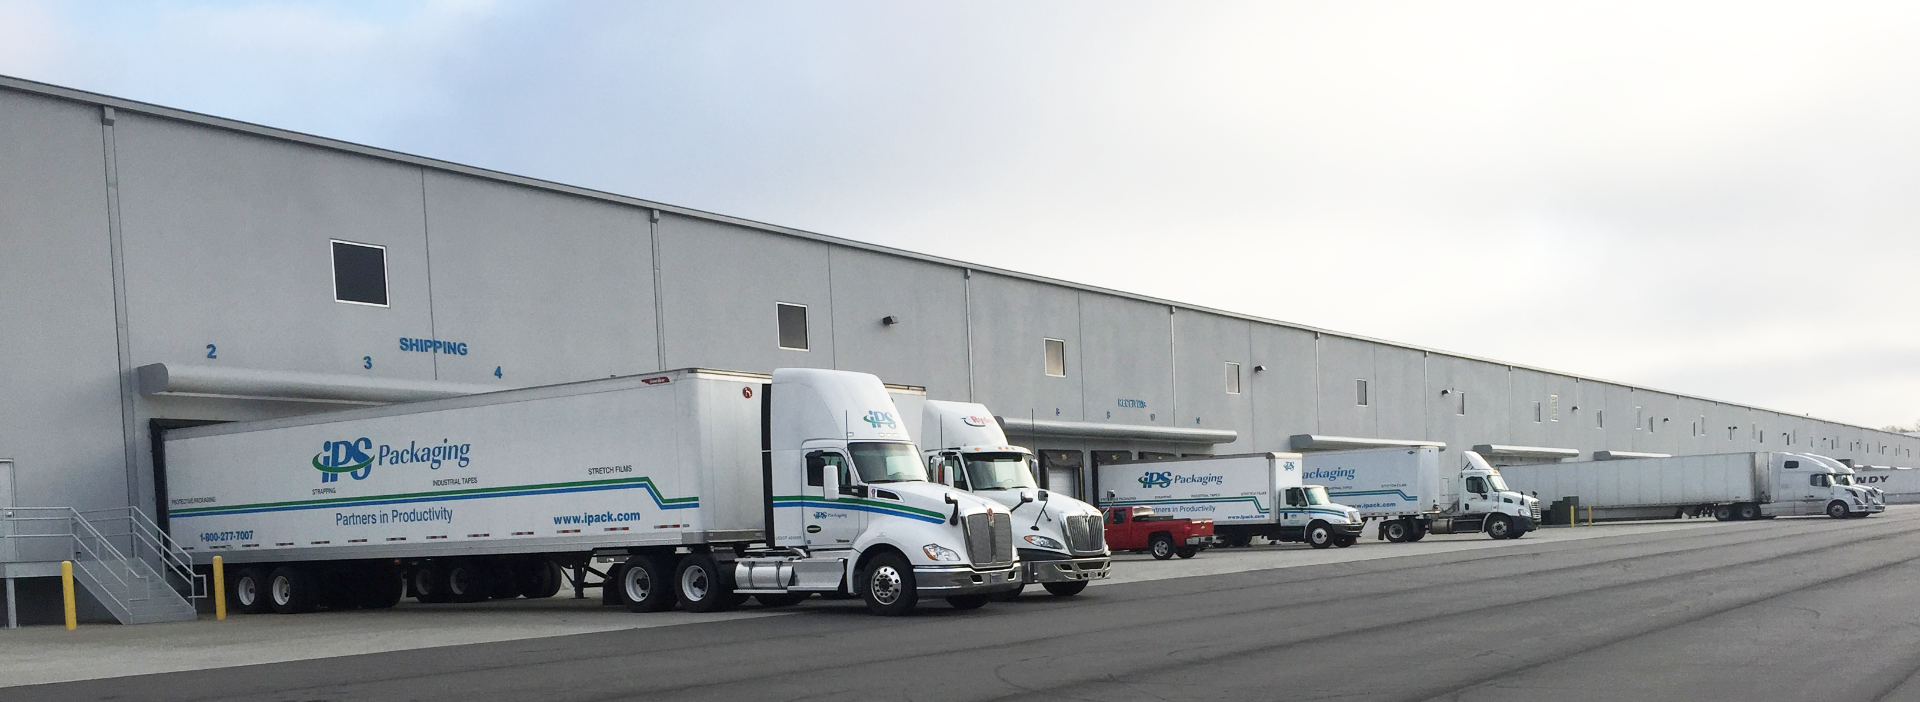 ips packaging & automation semi trucks backed into loading dock at warehouse